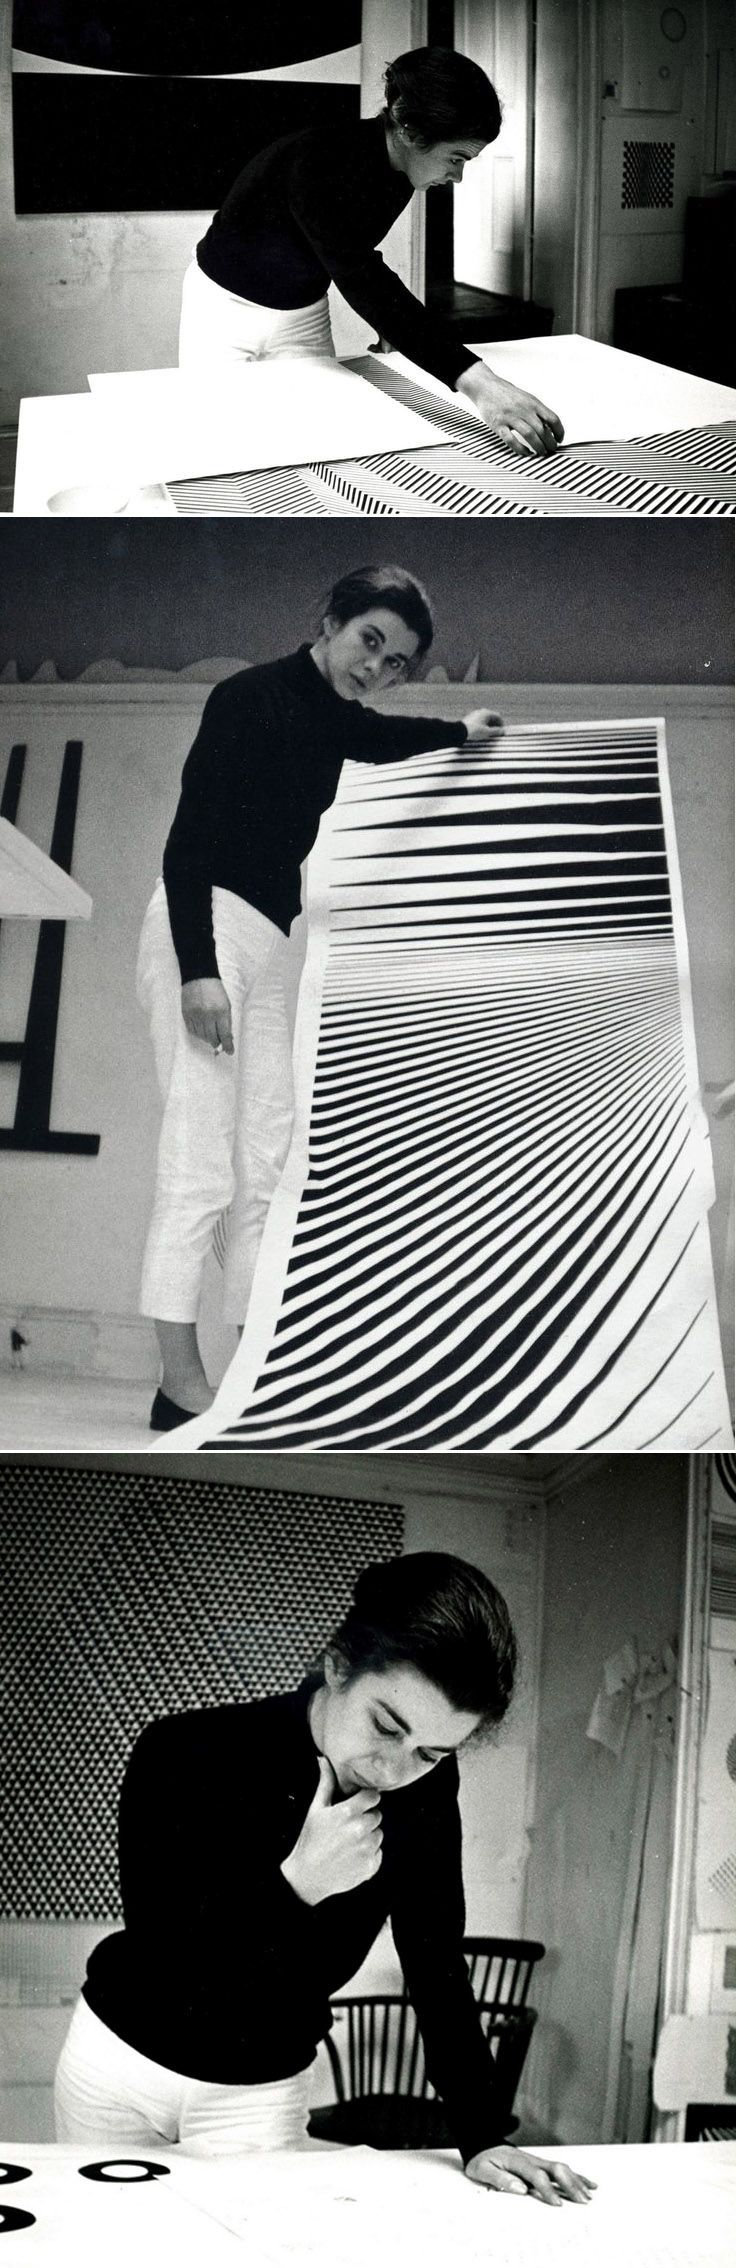 Maddie~This is Bridget Riley at work next to her artwork that she created.